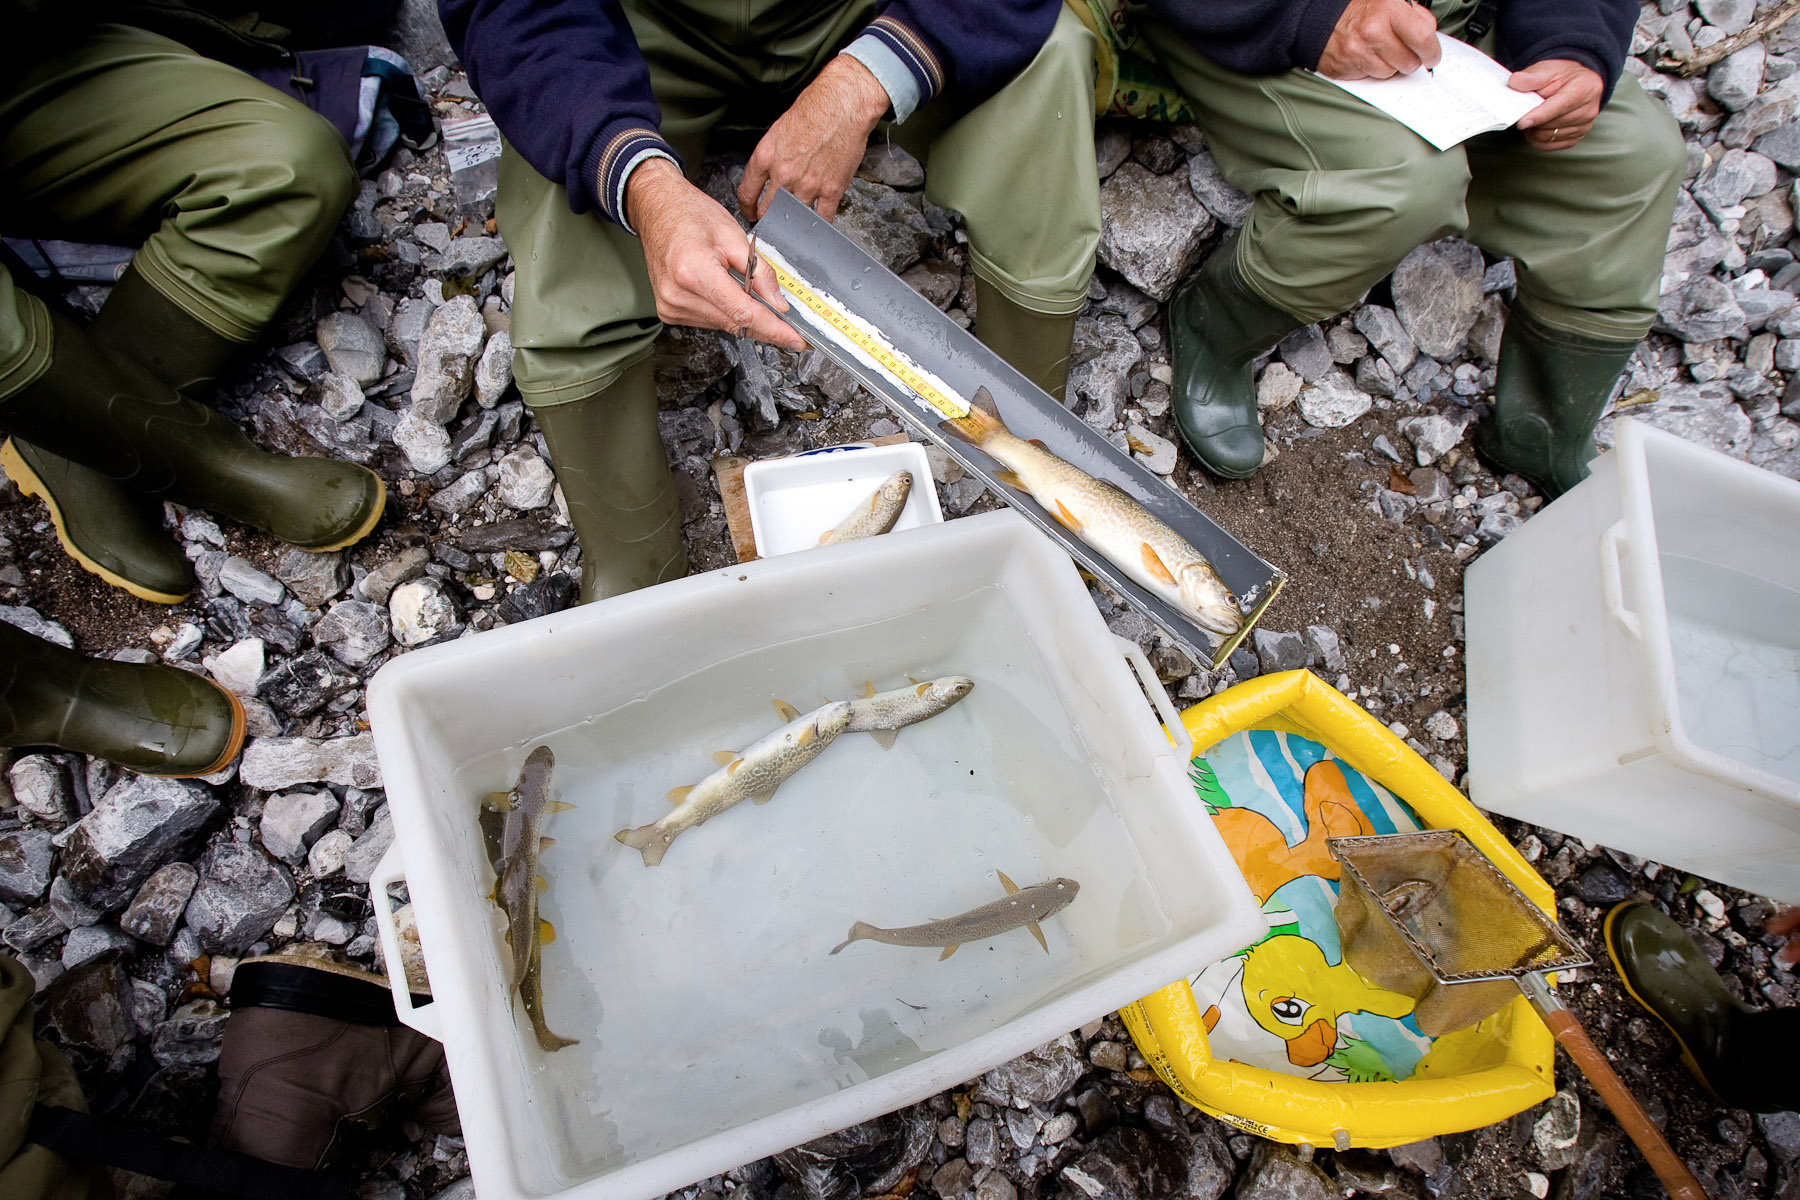 A team of scientists and fishkeepers examine pure Marble trout in Zadlaščica stream, the original stream known to contain genetically pure Marble trout. Monitoring is crucial to determine their demographics.